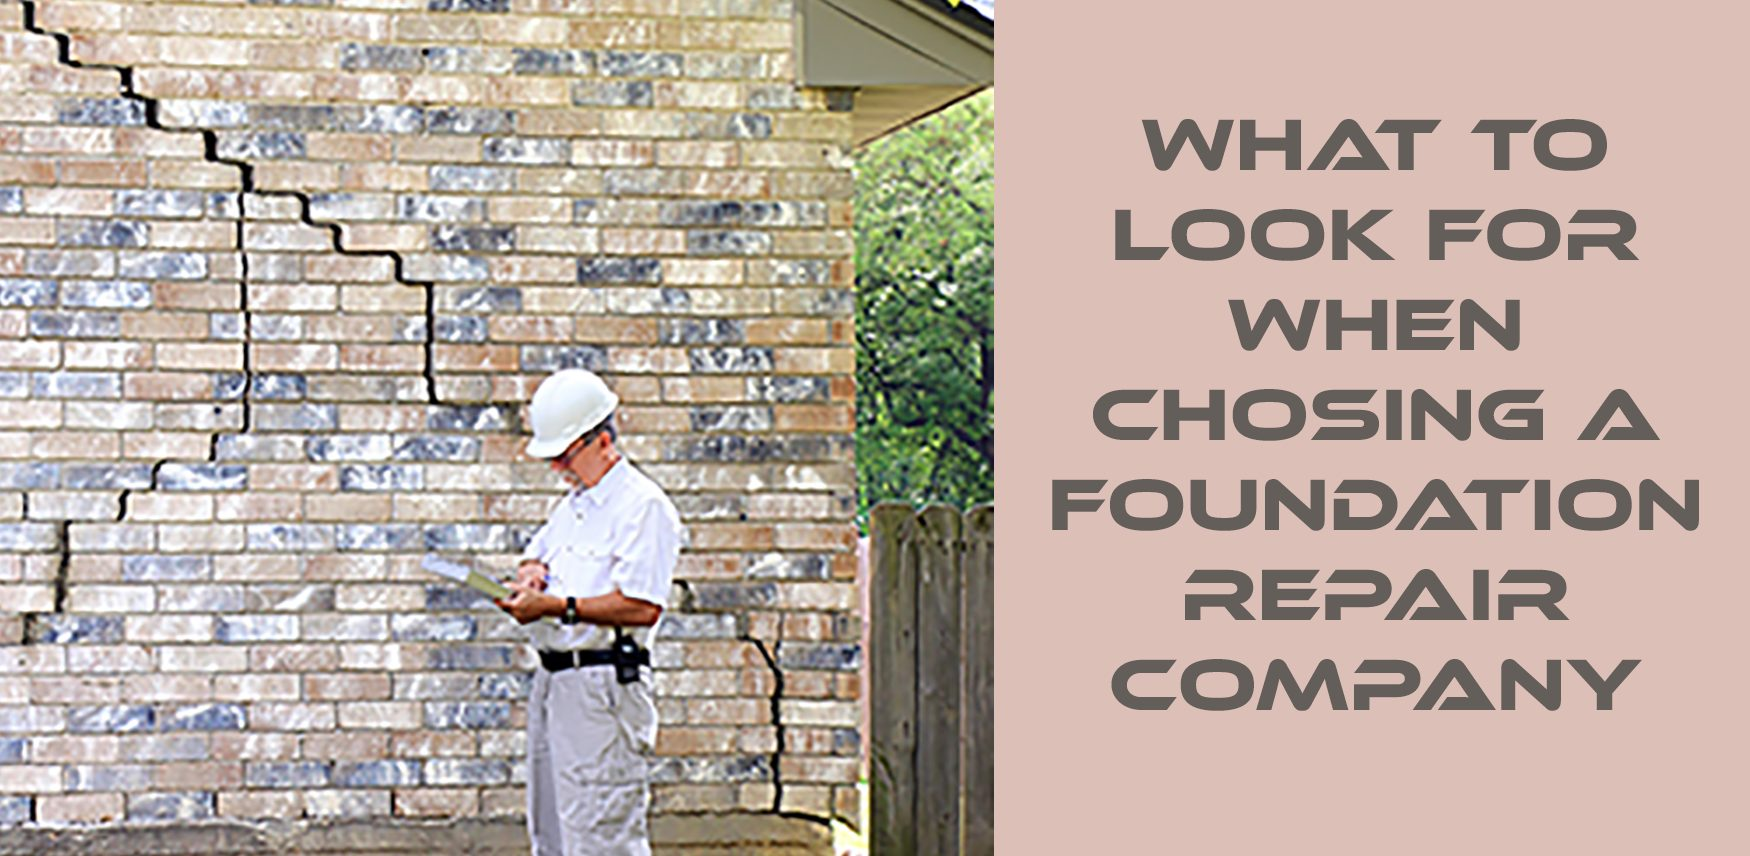 What to Look for When Choosing a Foundation Repair Company